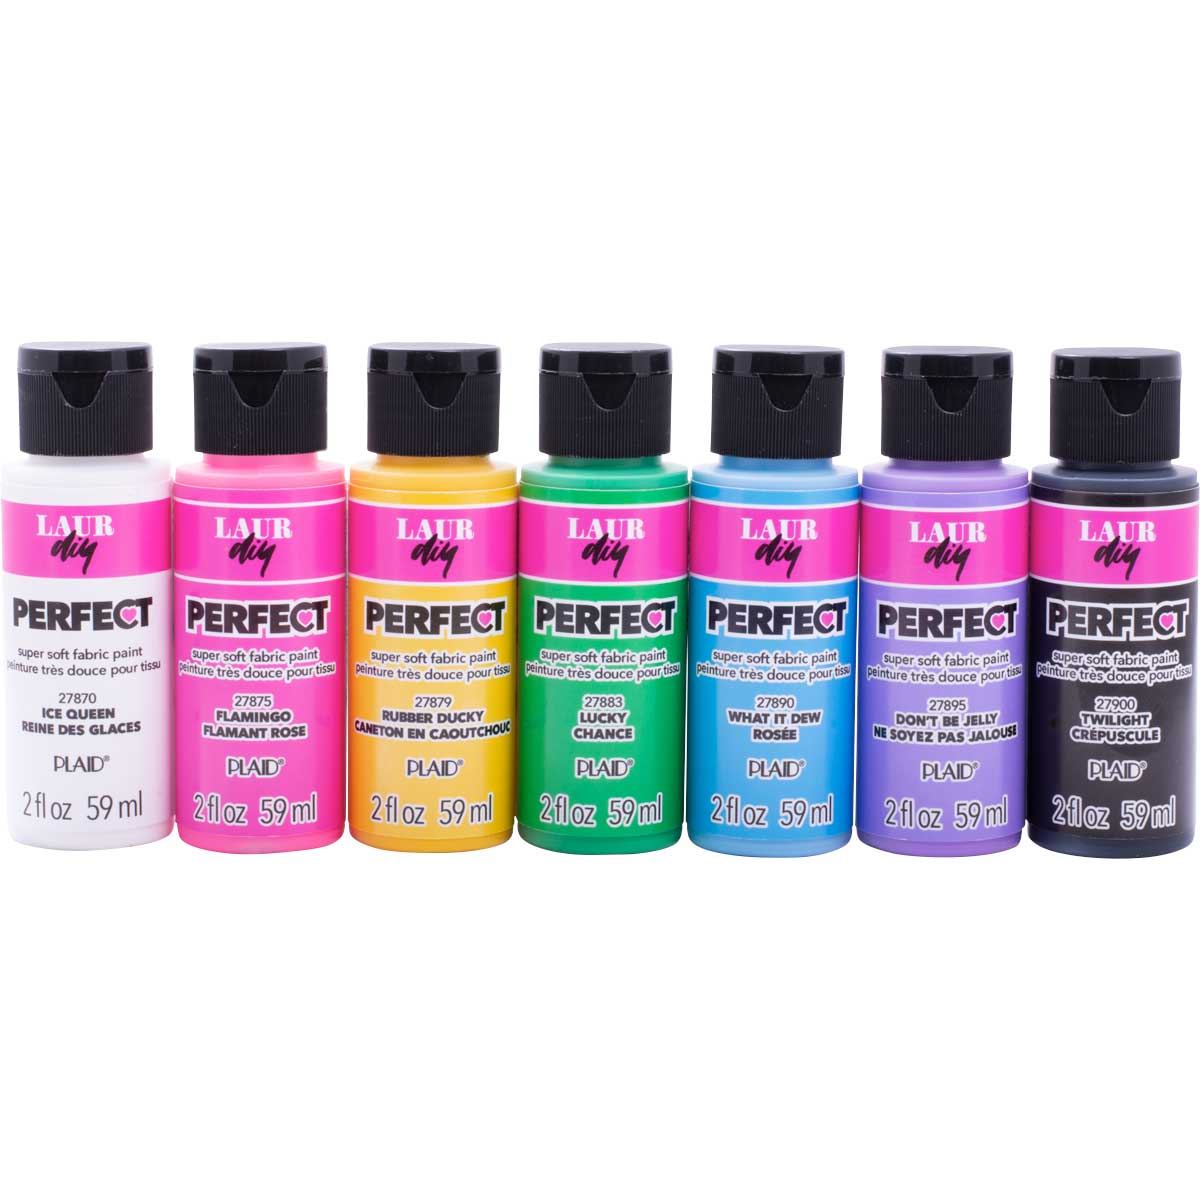 LaurDIY ® Perfect Fabric Paint Set